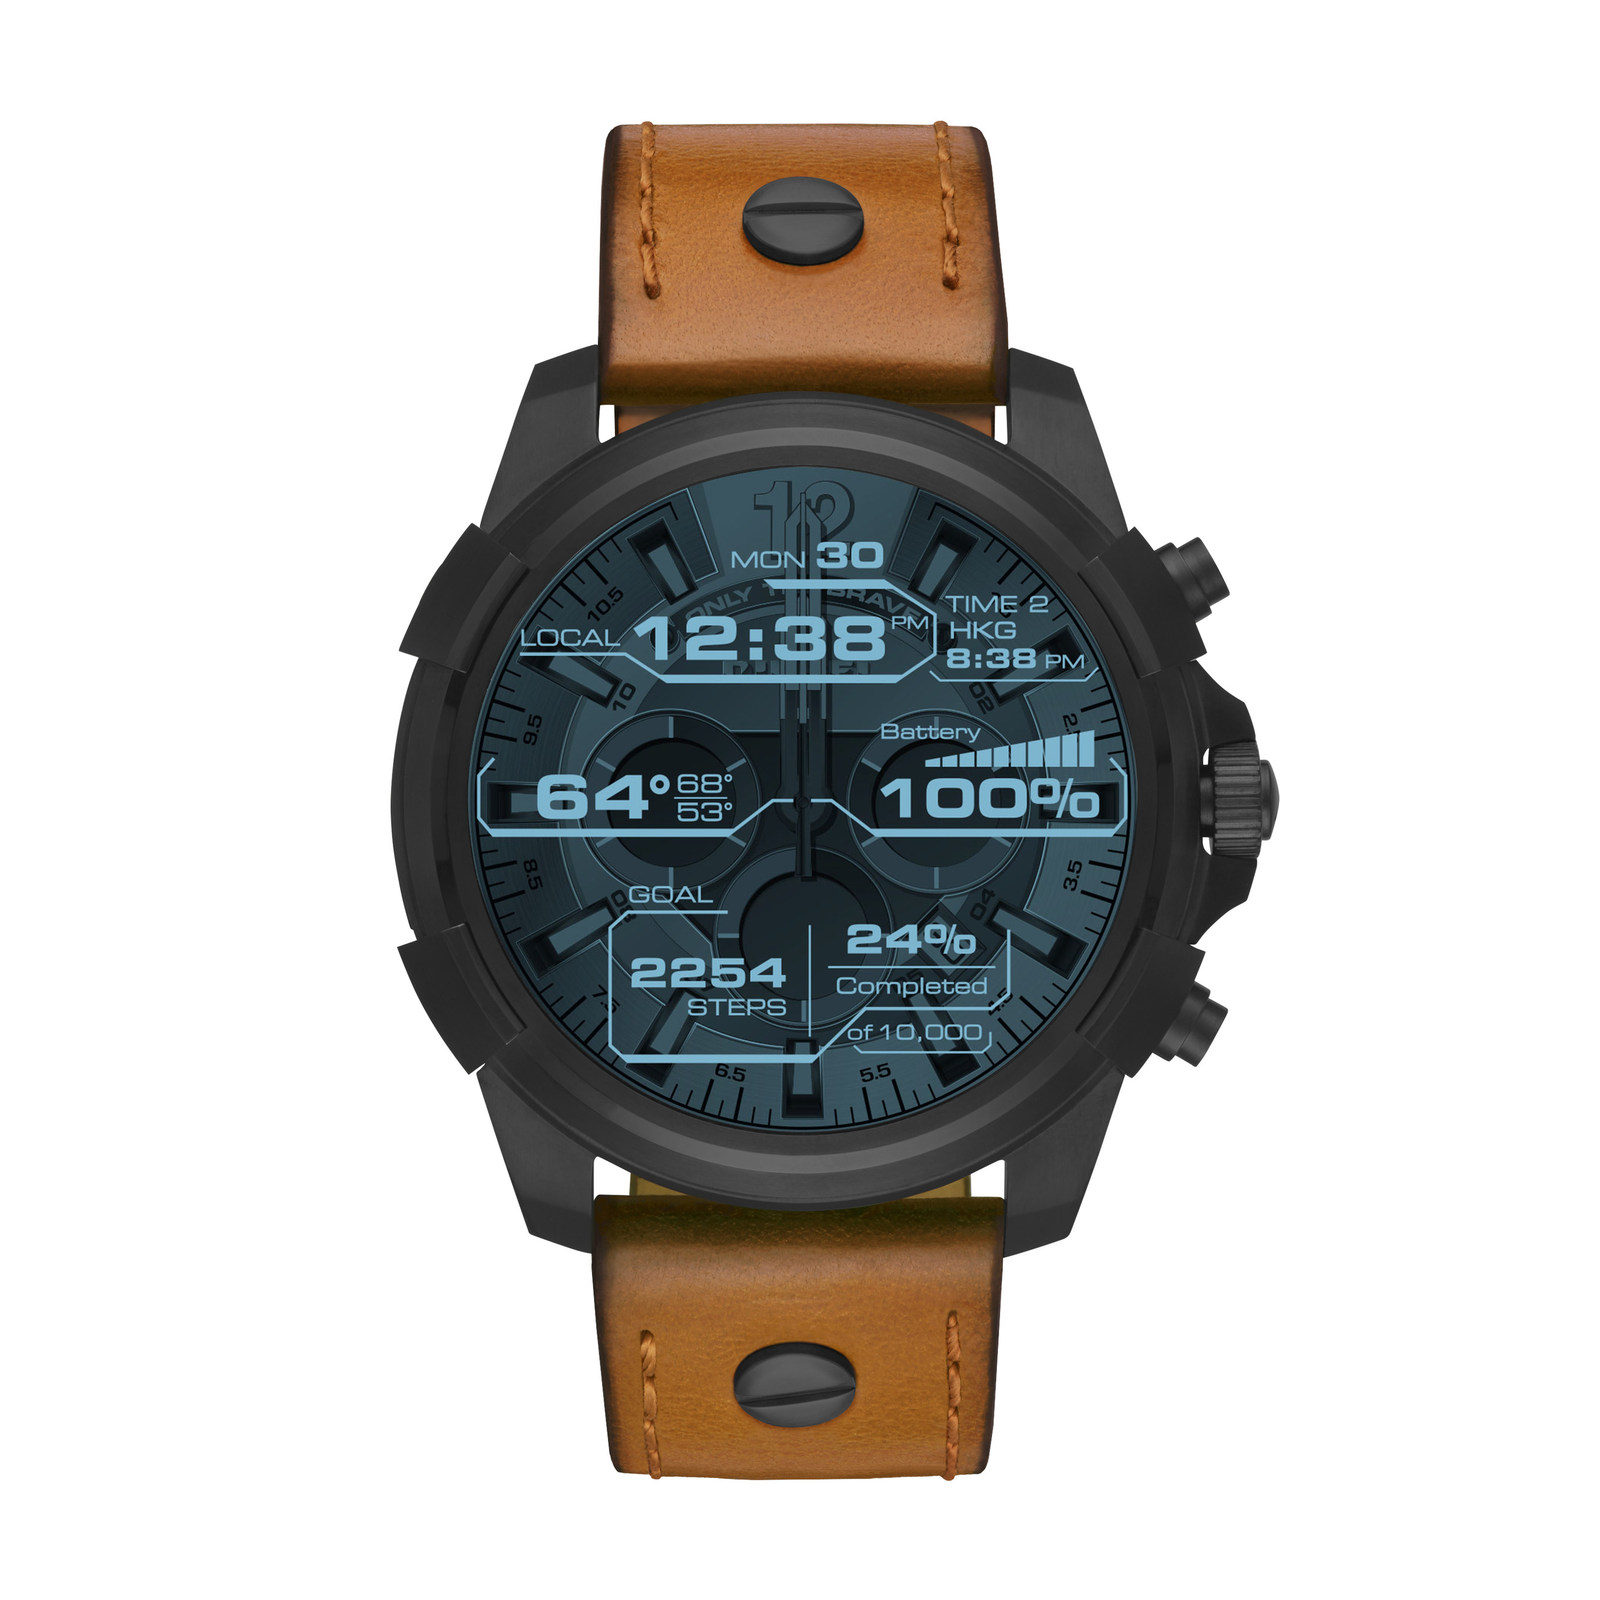 Fossil-IFA-2017-Watches-01